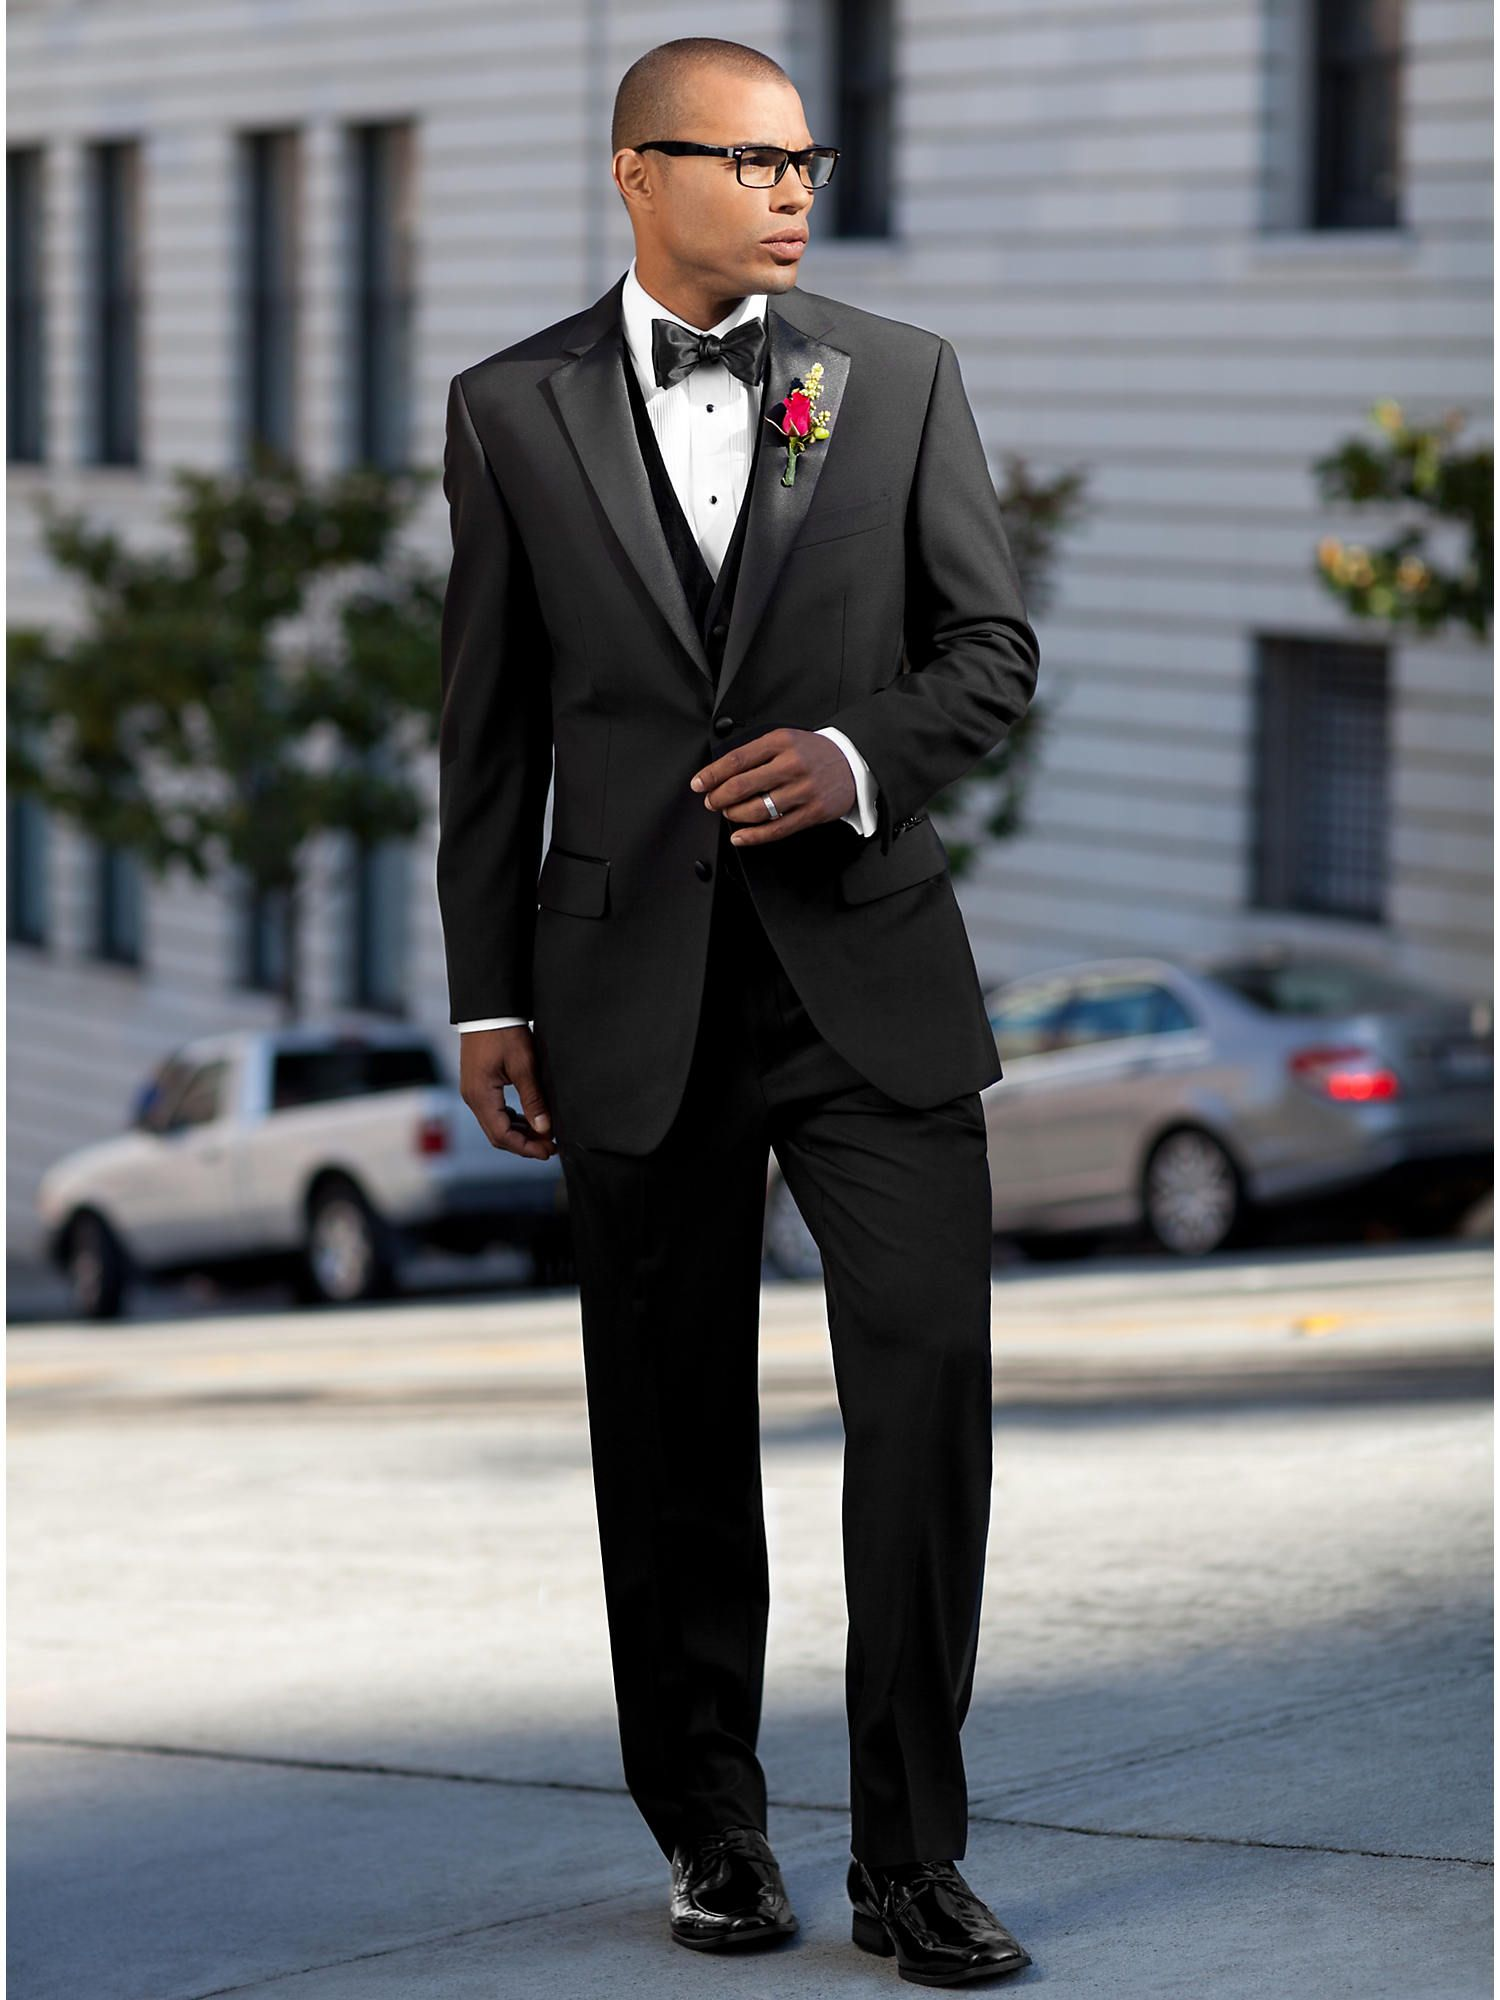 Wedding Party Black Vested Suit Men's Wearhouse (With